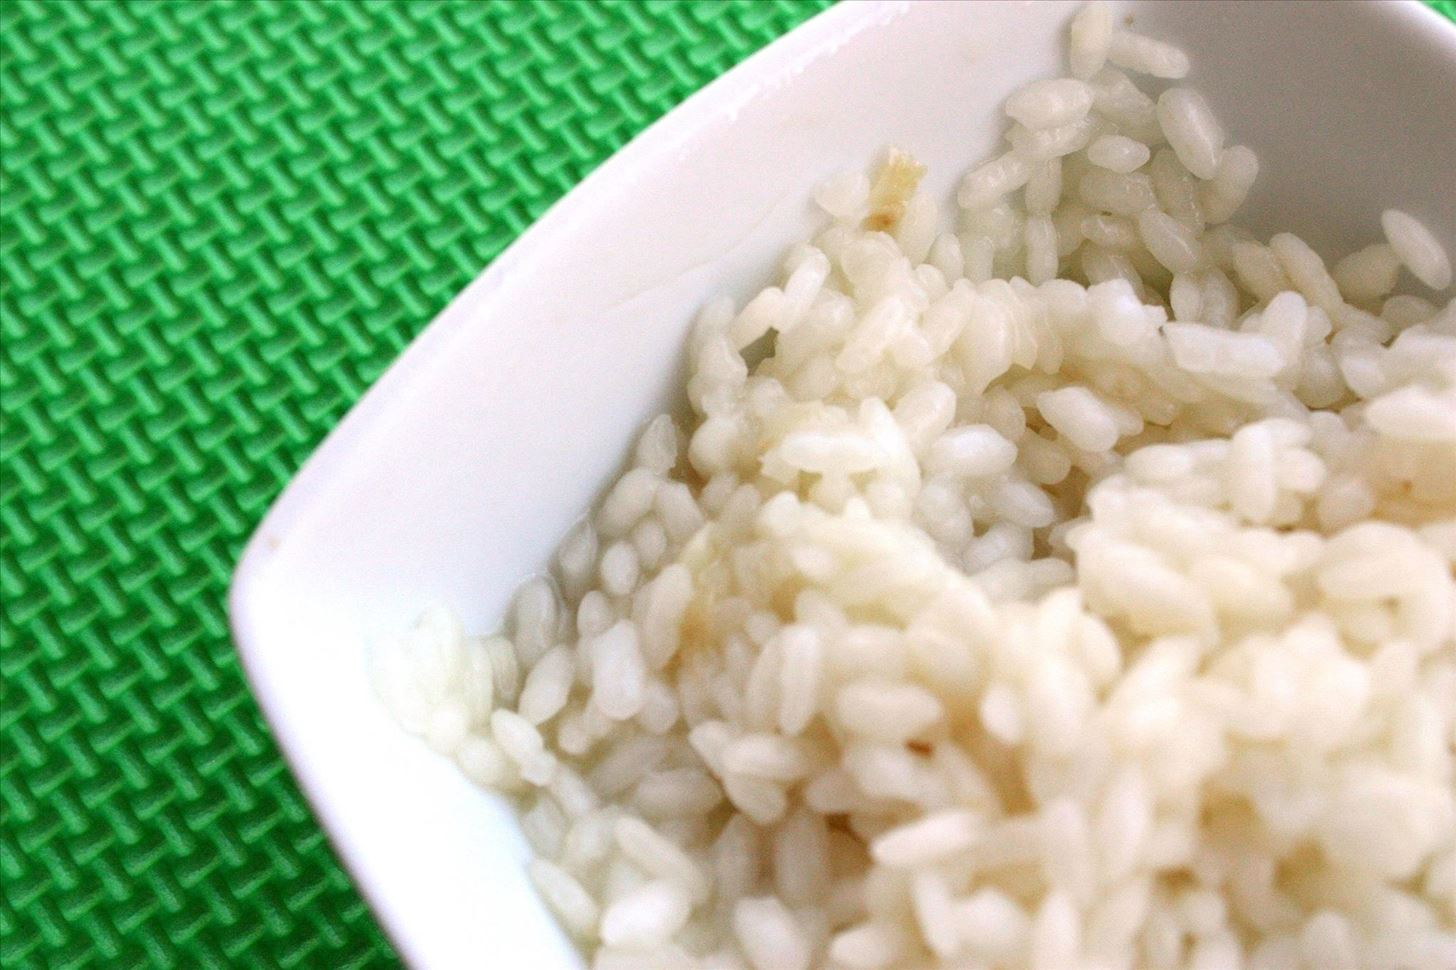 How to Make Fast, Easy Single-Serve Risotto in the Microwave